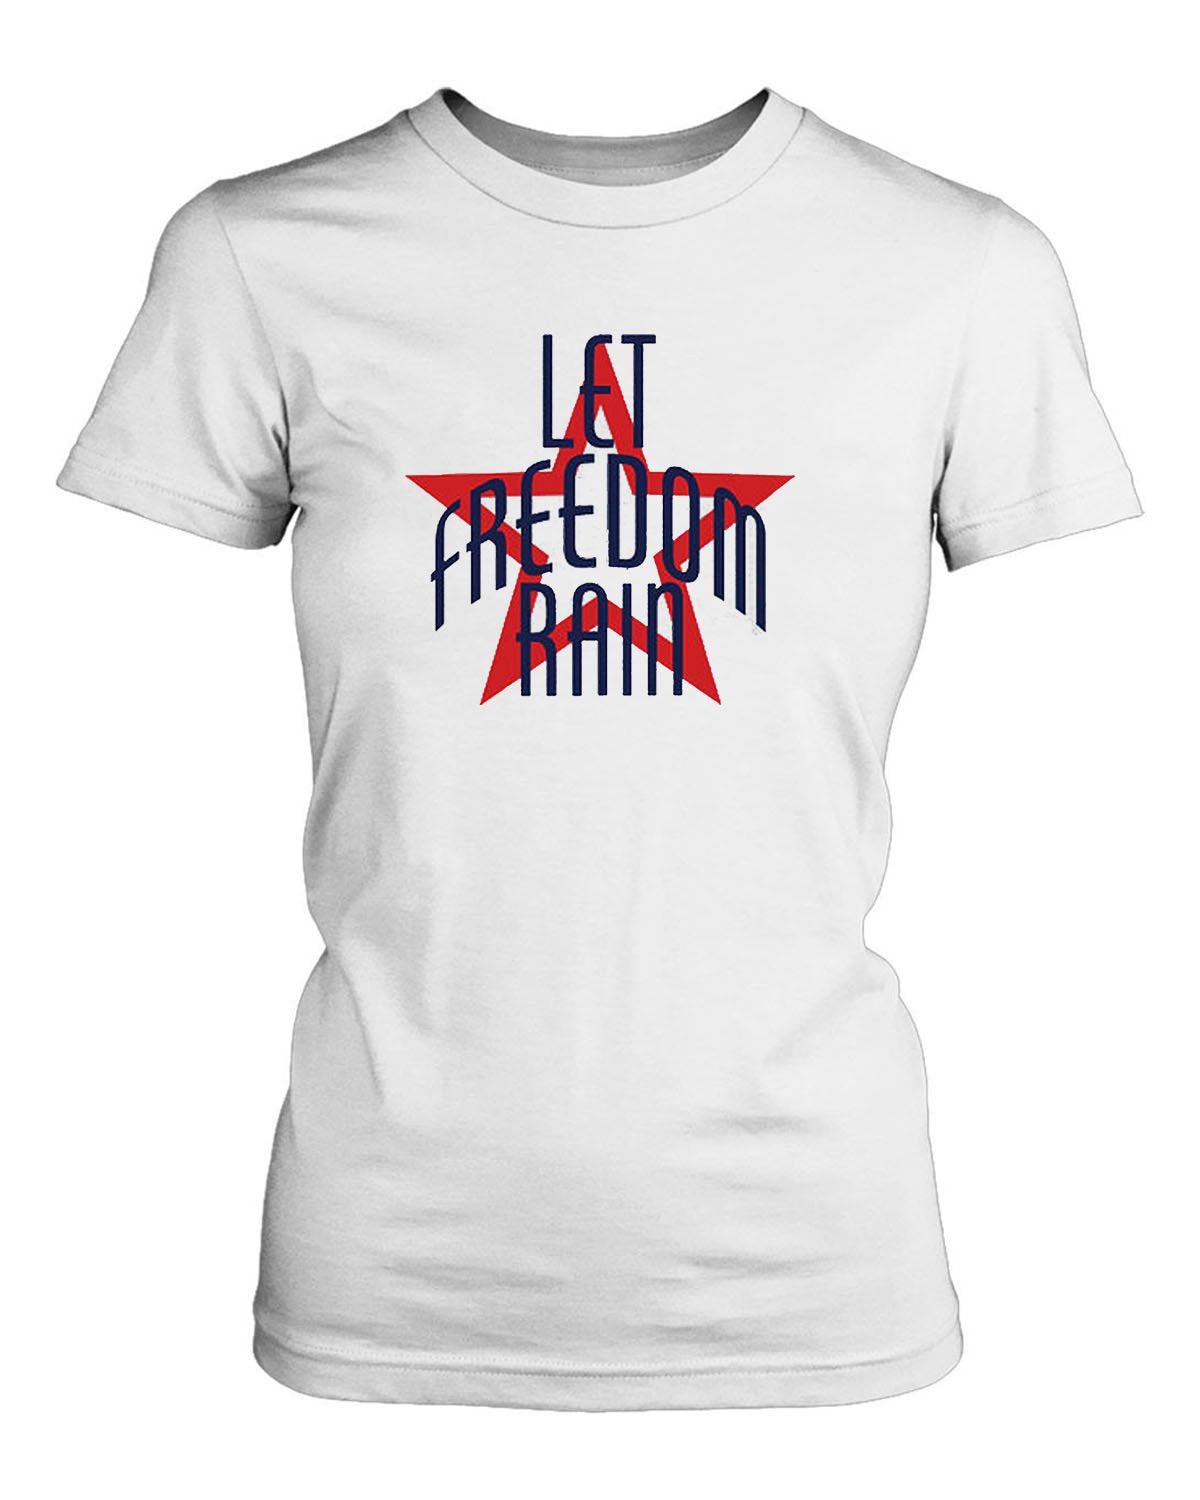 Let Freedom Rain Women's T-Shirt